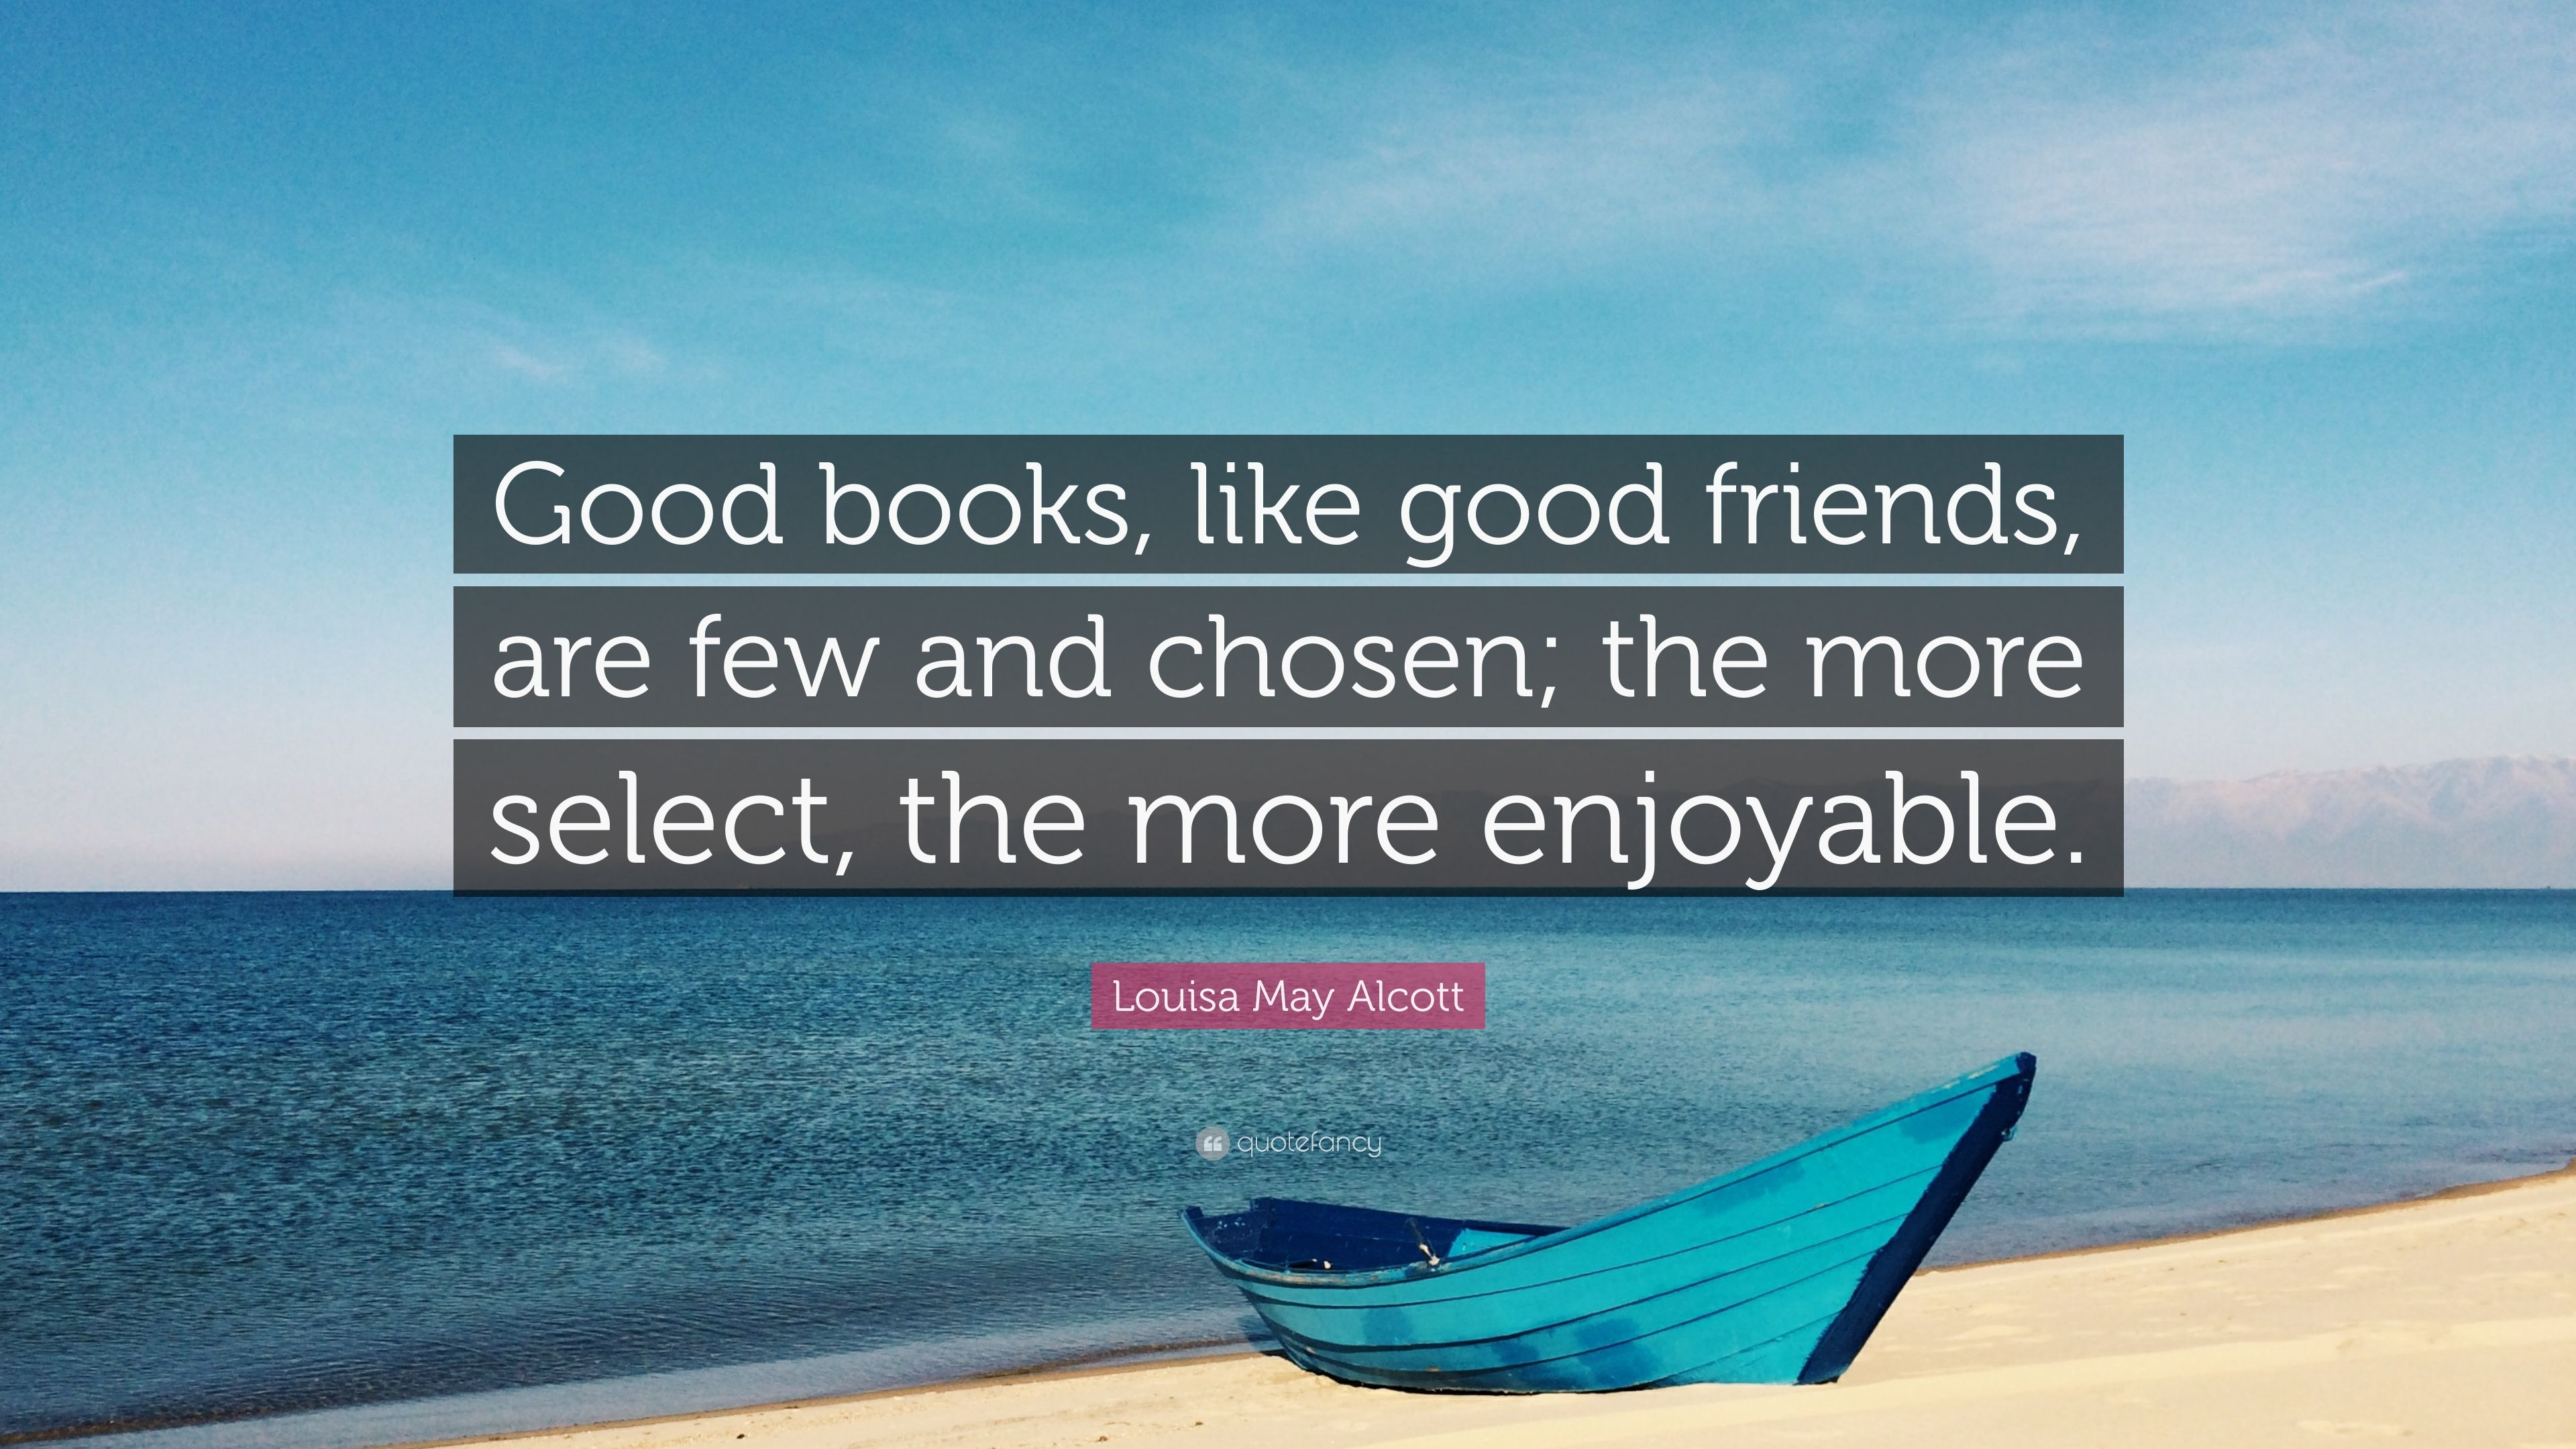 good books like good friends are few and chosen